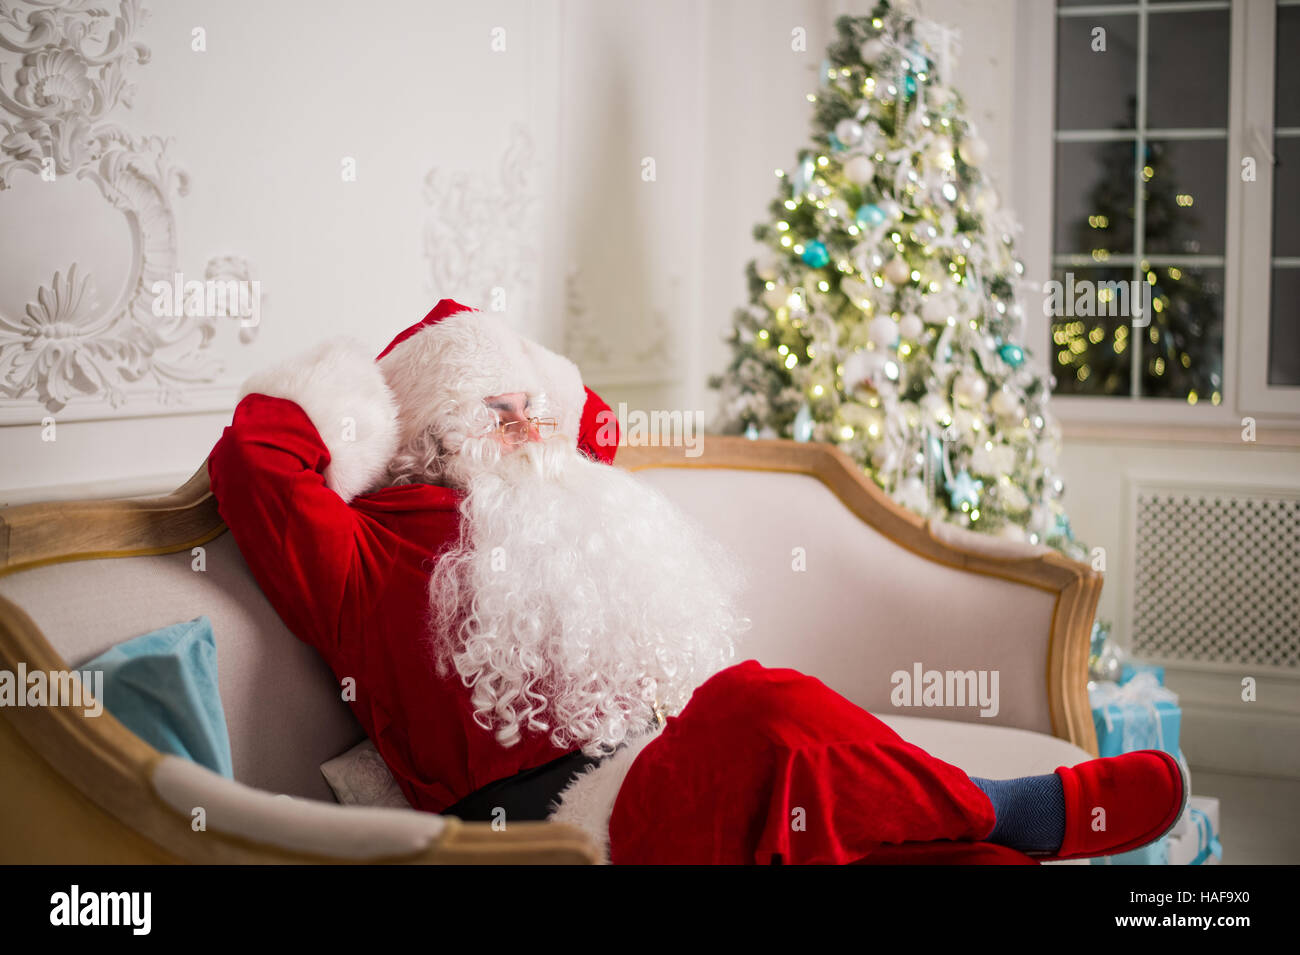 Santa claus relaxing on sofa against christmas tree at